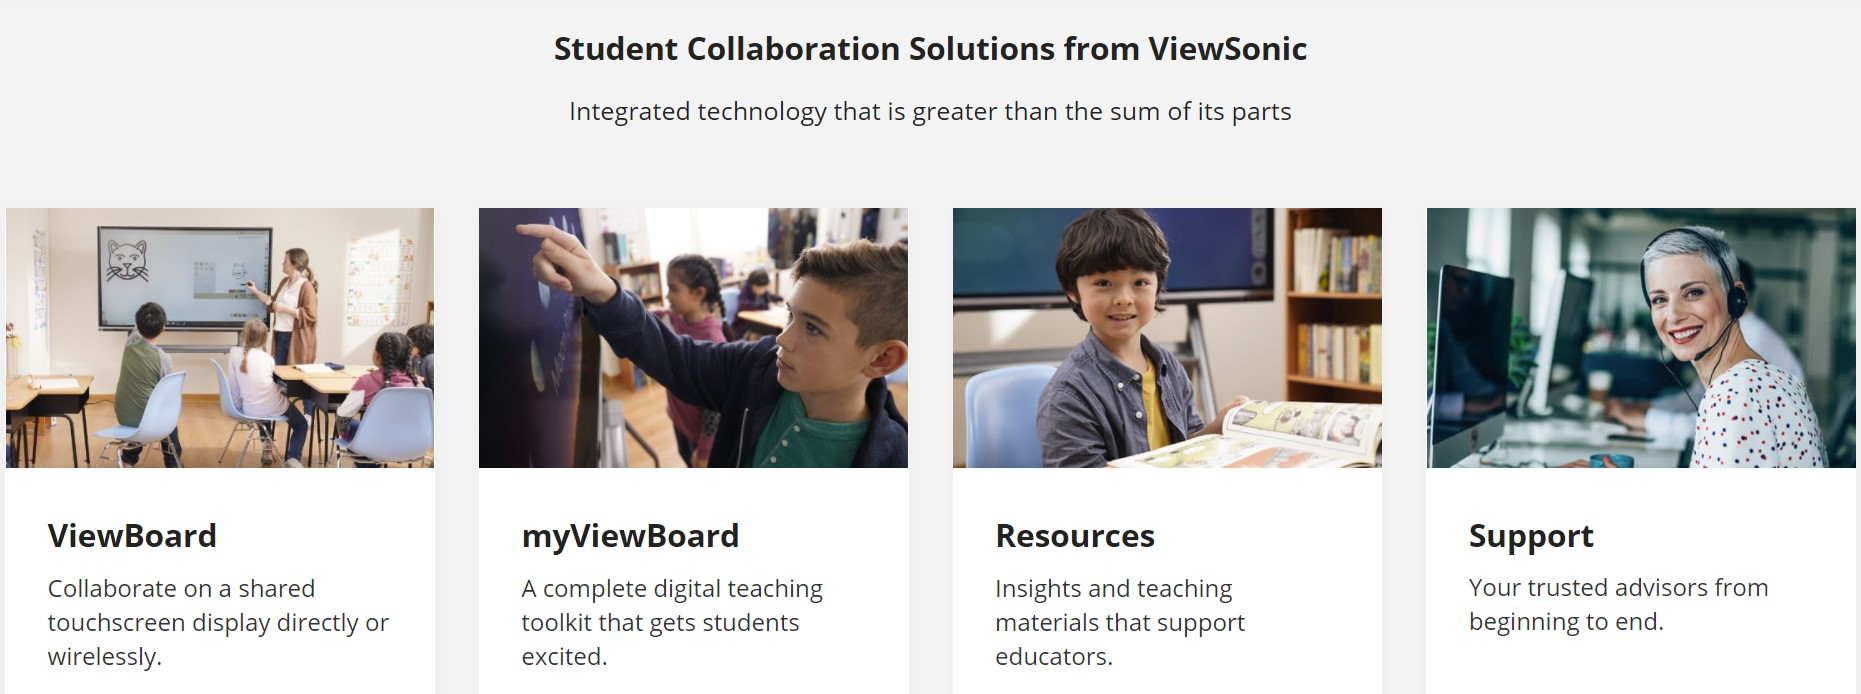 Student Collaboration Solutions from ViewSonic - Interactive Whiteboard